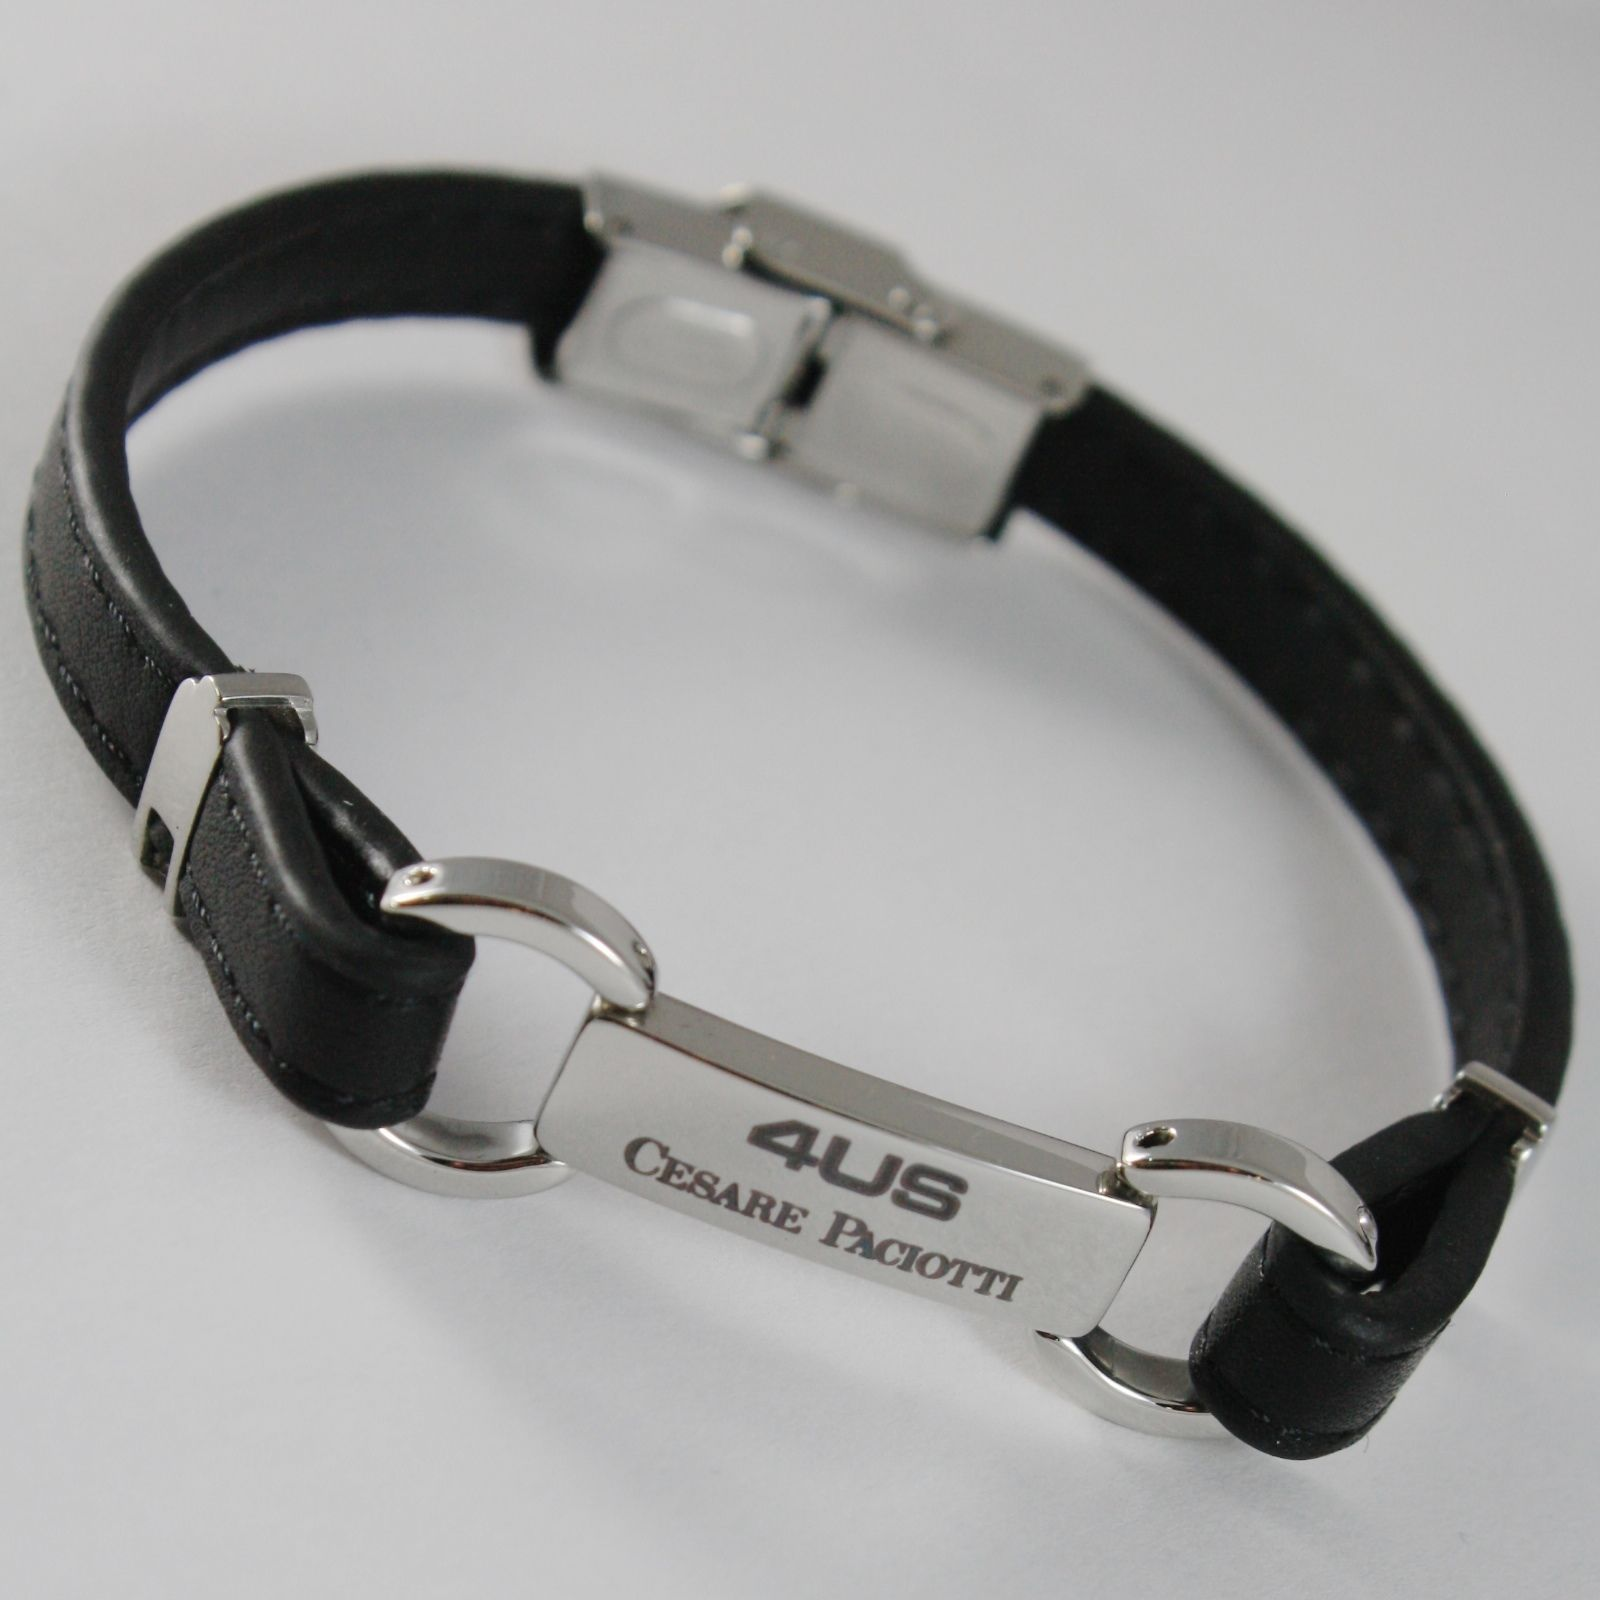 STAINLESS STEEL BRACELET WITH PLATE AND LEATHER BAND, 4US BY CESARE PACIOTTI